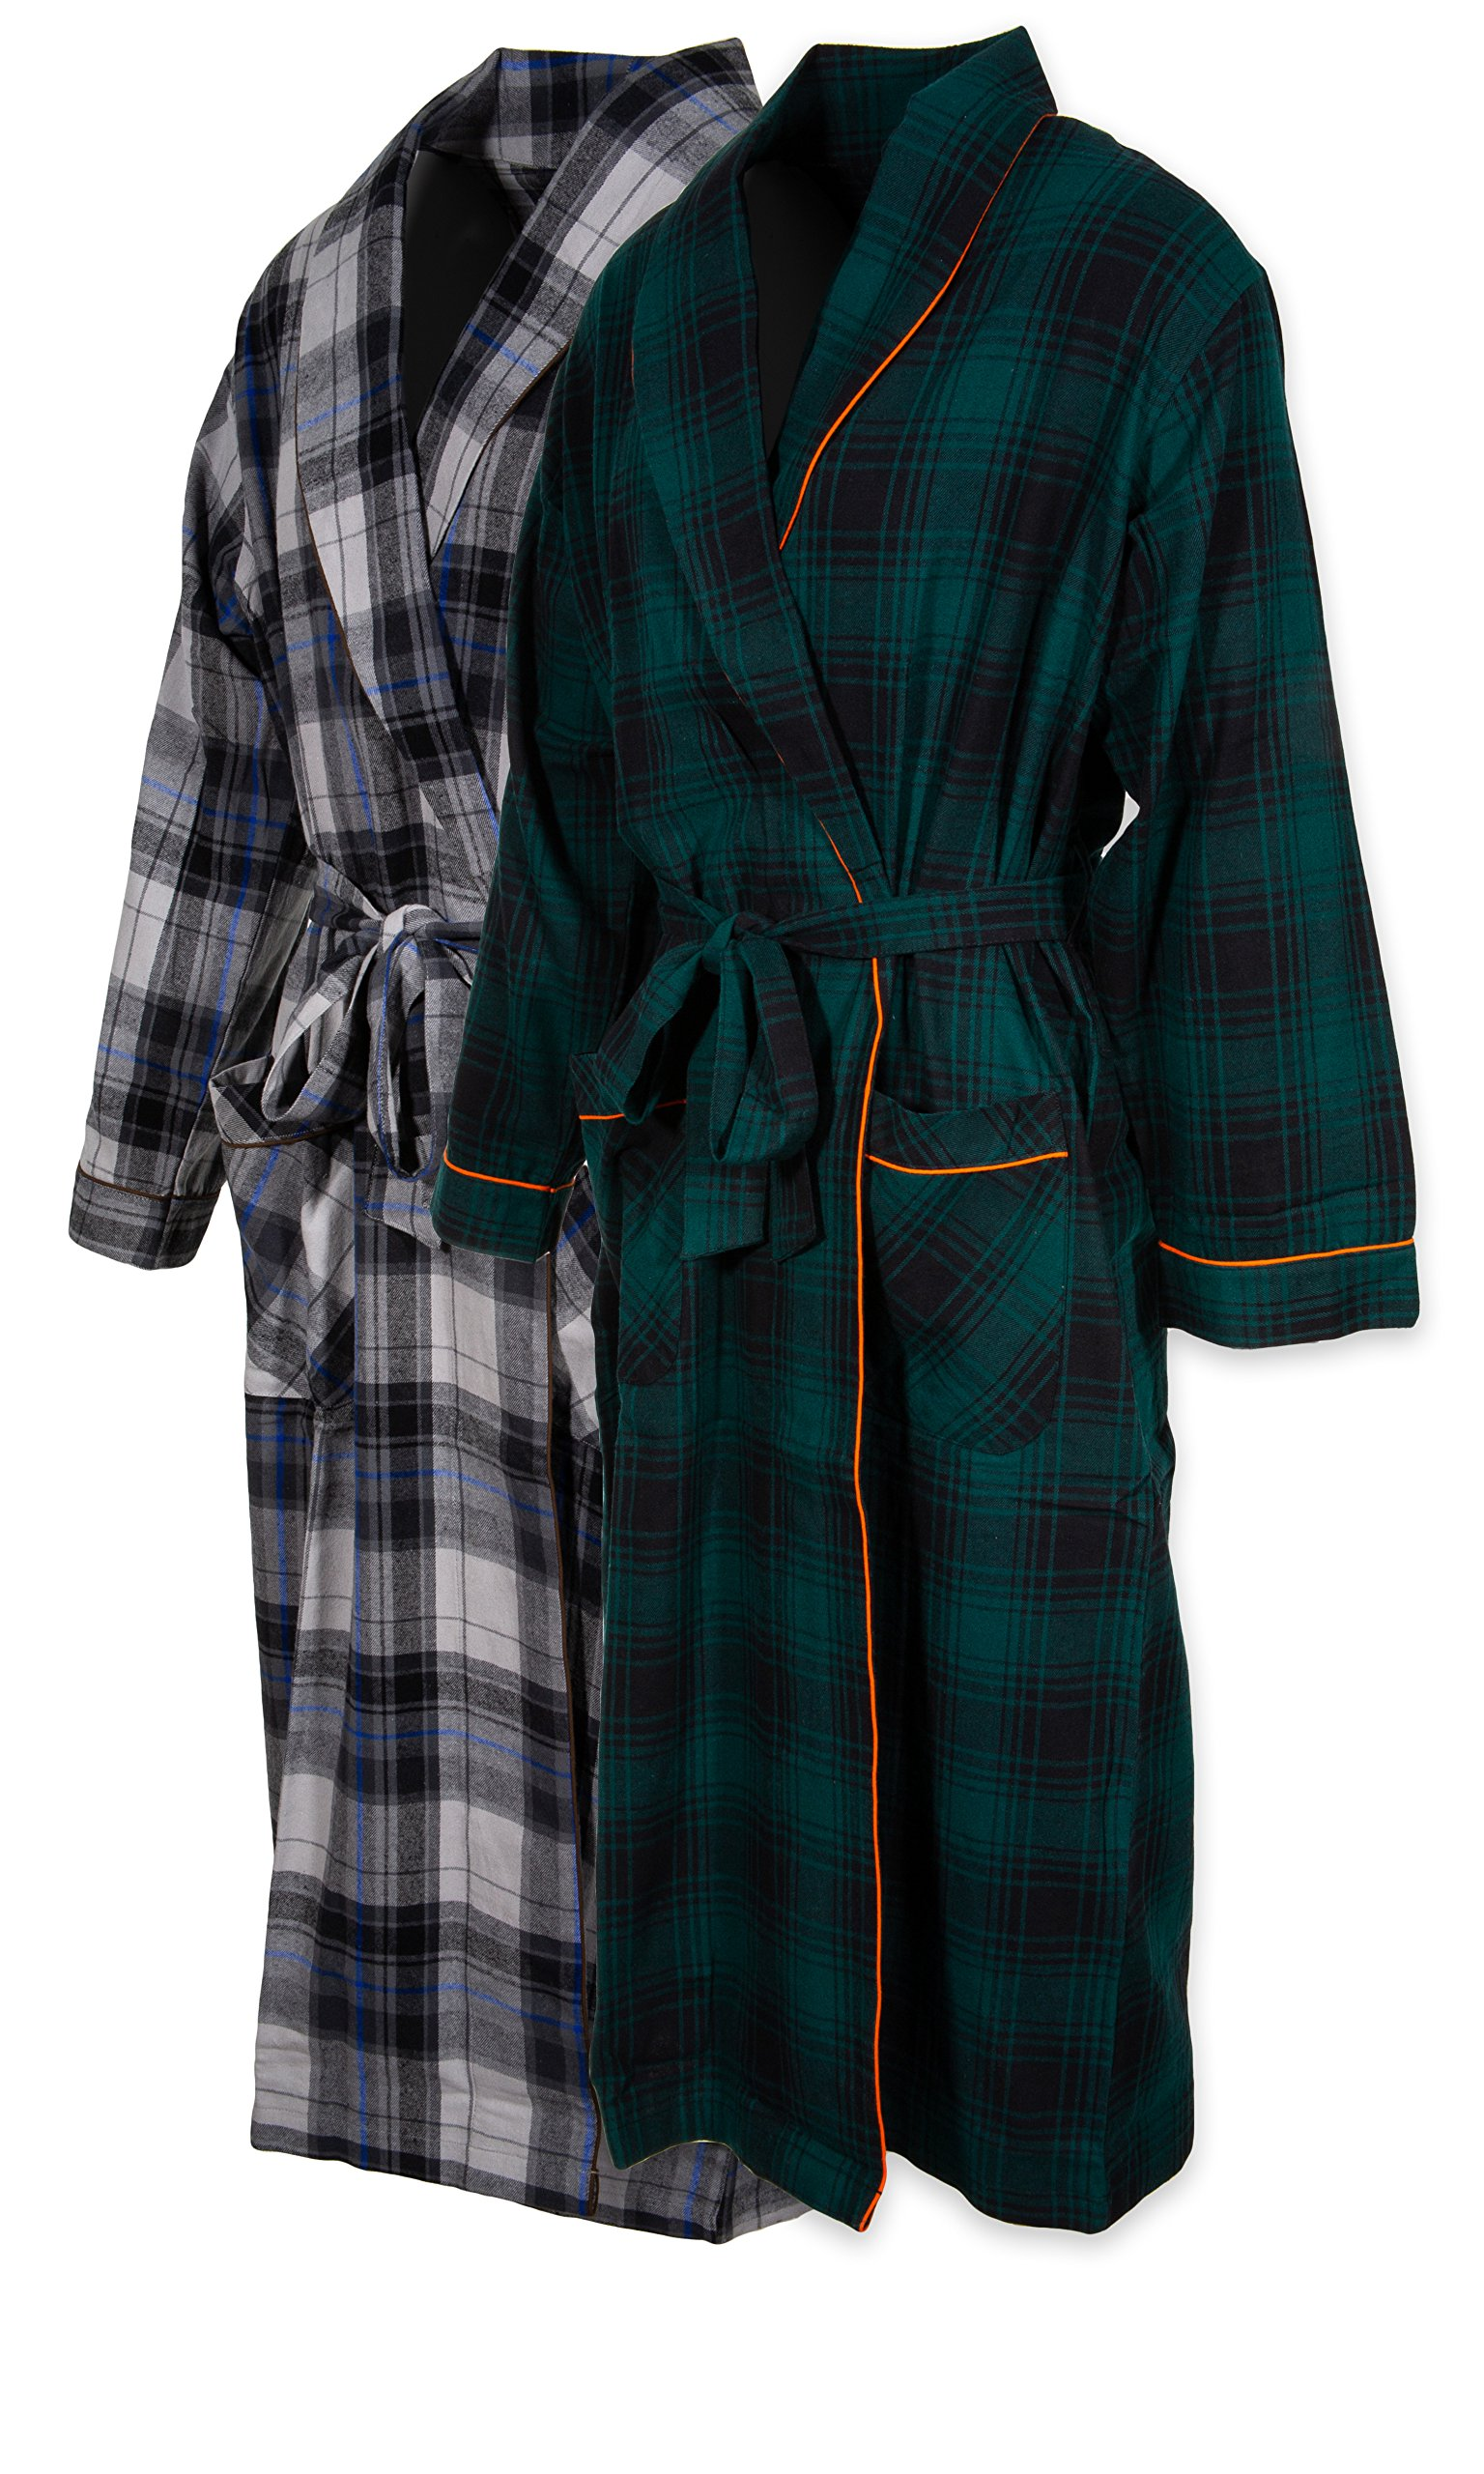 Andrew Scott Mens 2 Pack Long Sleep -Sauna Robe/100% Cotton Flannel Brush Warm Bathrobe (2 Pack-Assorted Plaids, 2XL/3XL)